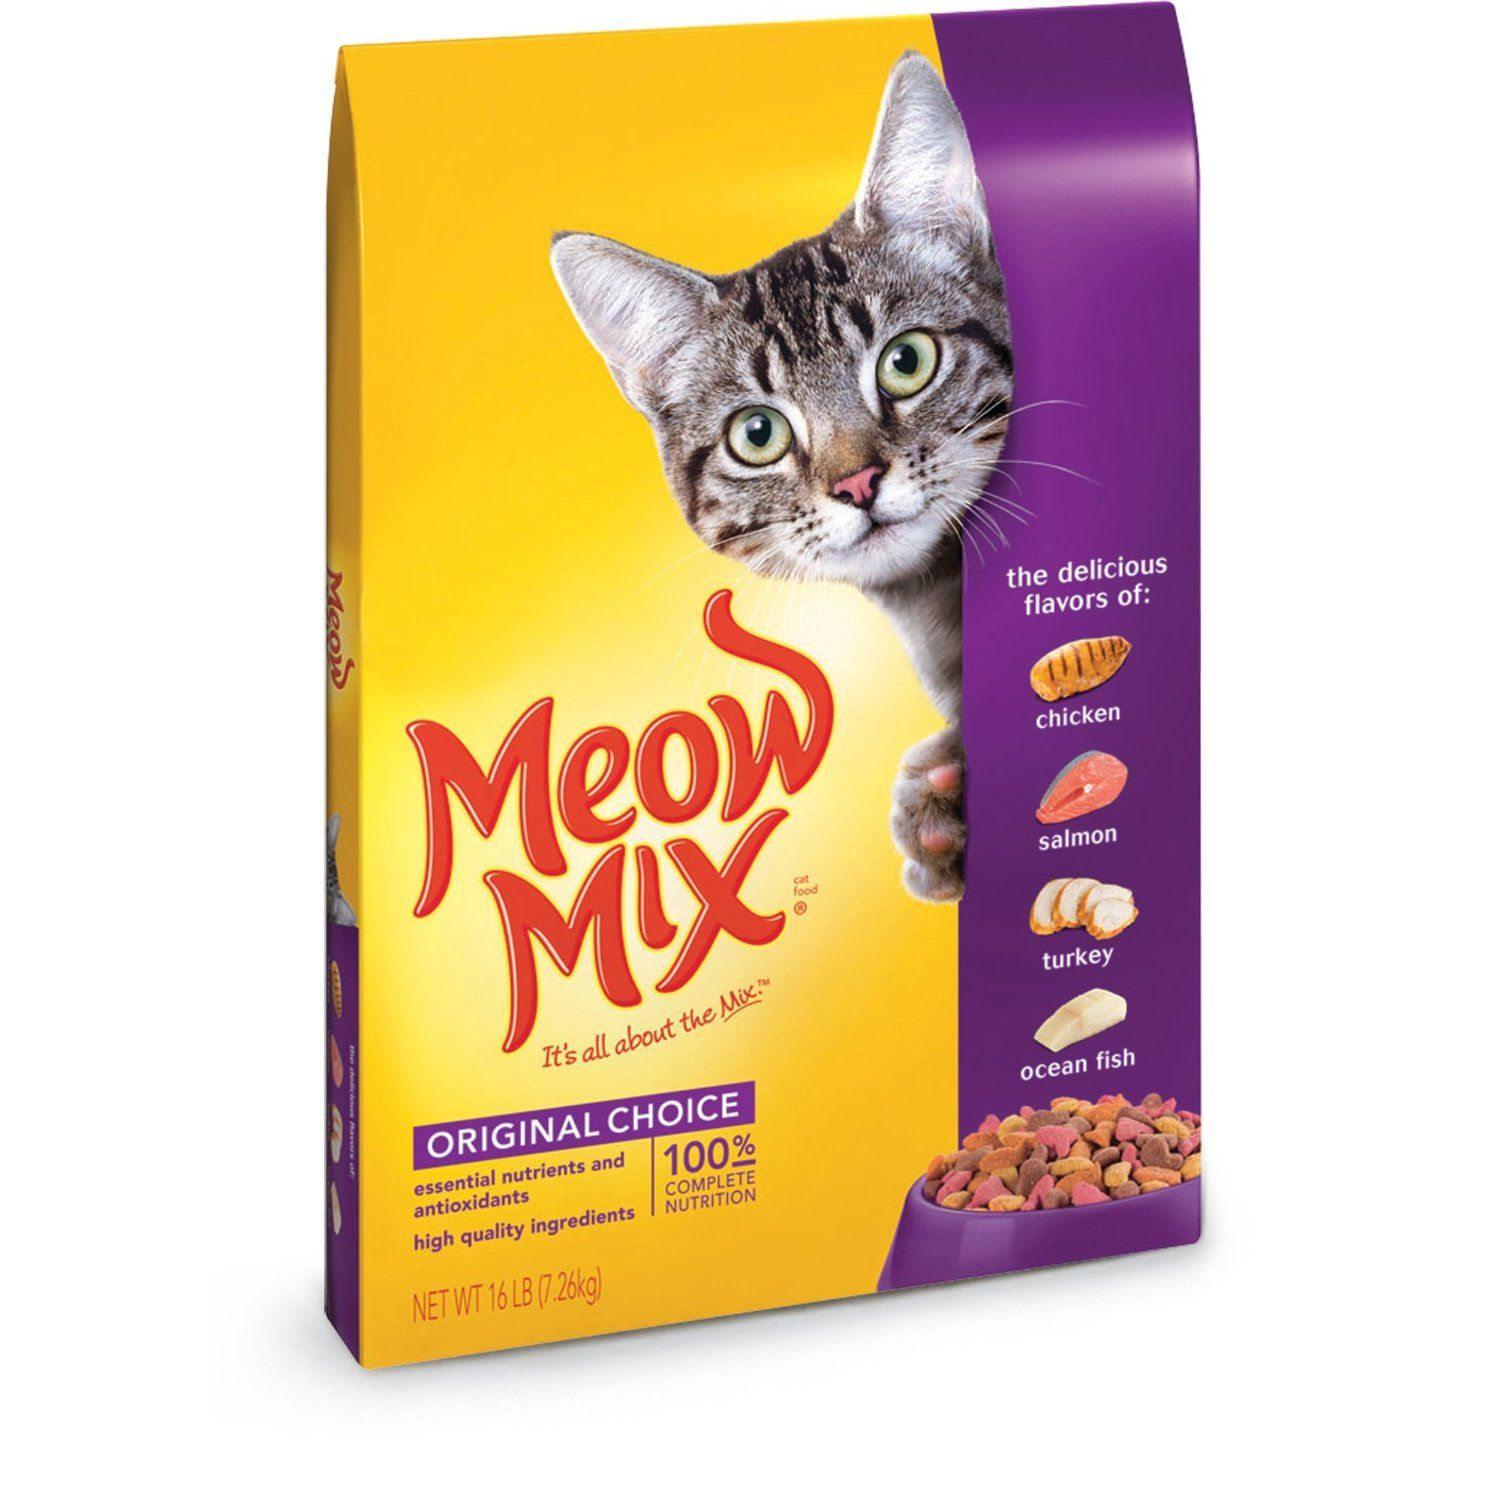 1 Meow Mix Dry Cat Food Http Amzn To 1pjaaex Cat Food Coupons Dry Cat Food Kitten Food